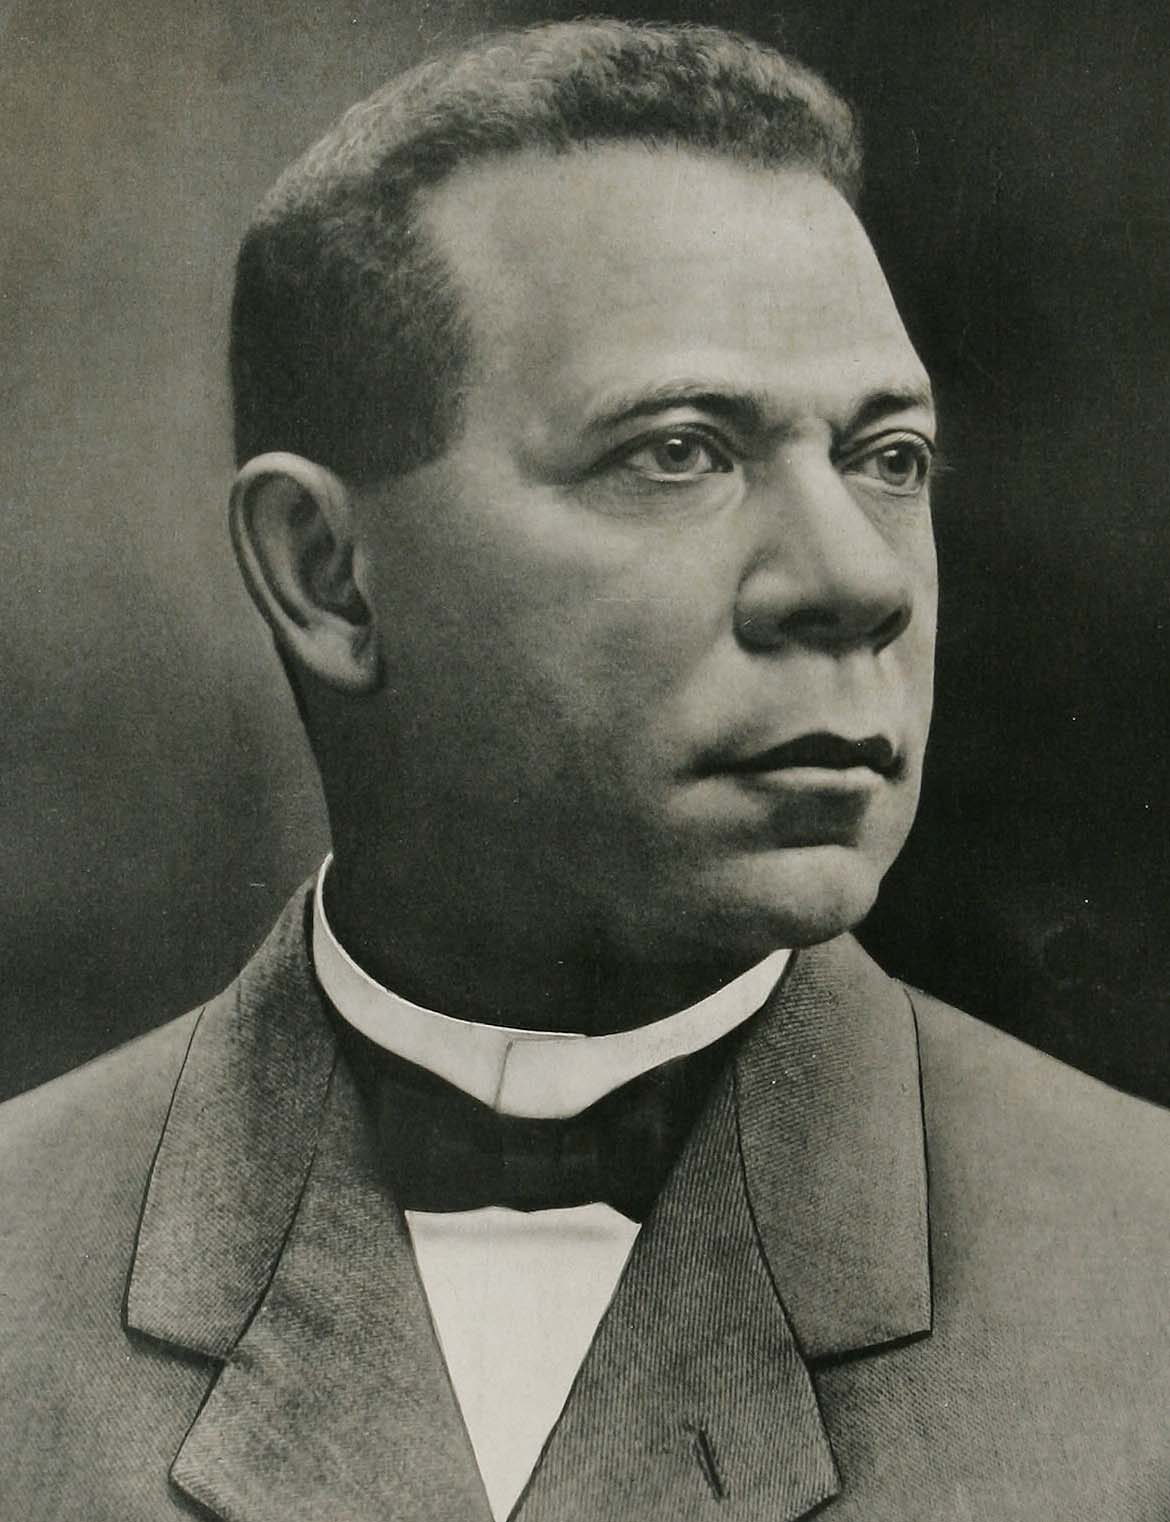 an analysis of booker page Atlanta compromise: atlanta compromise, classic statement on race relations, articulated by booker t washington, a leading black educator in the united states in the late 19th century.